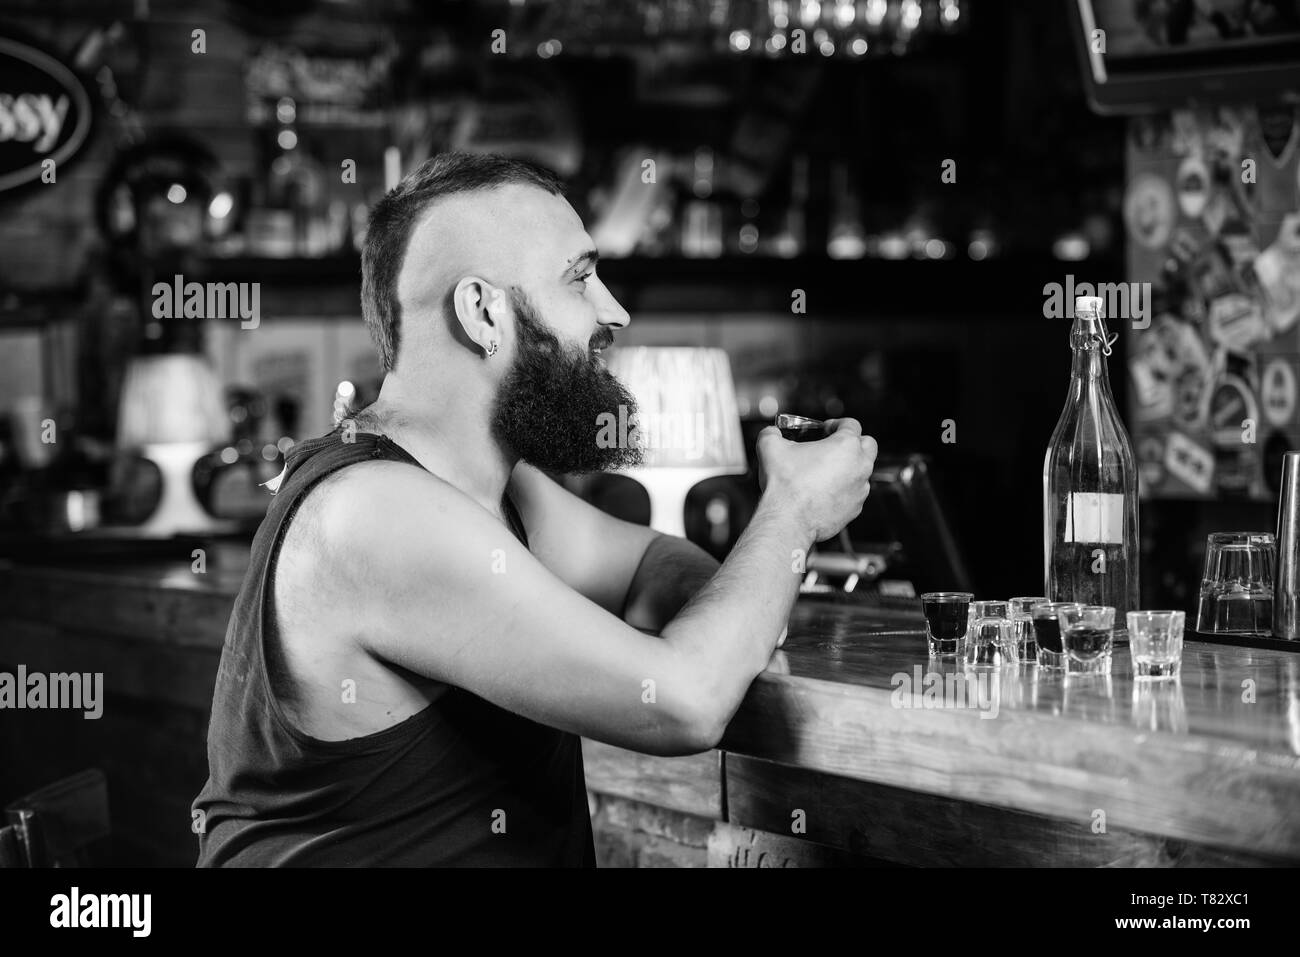 Hipster brutal man drinking alcohol ordering more drinks at bar counter. Guy spend leisure in bar with alcohol. Man drunk sit alone in pub. Alcoholism and depression. Alcohol addicted concept. - Stock Image